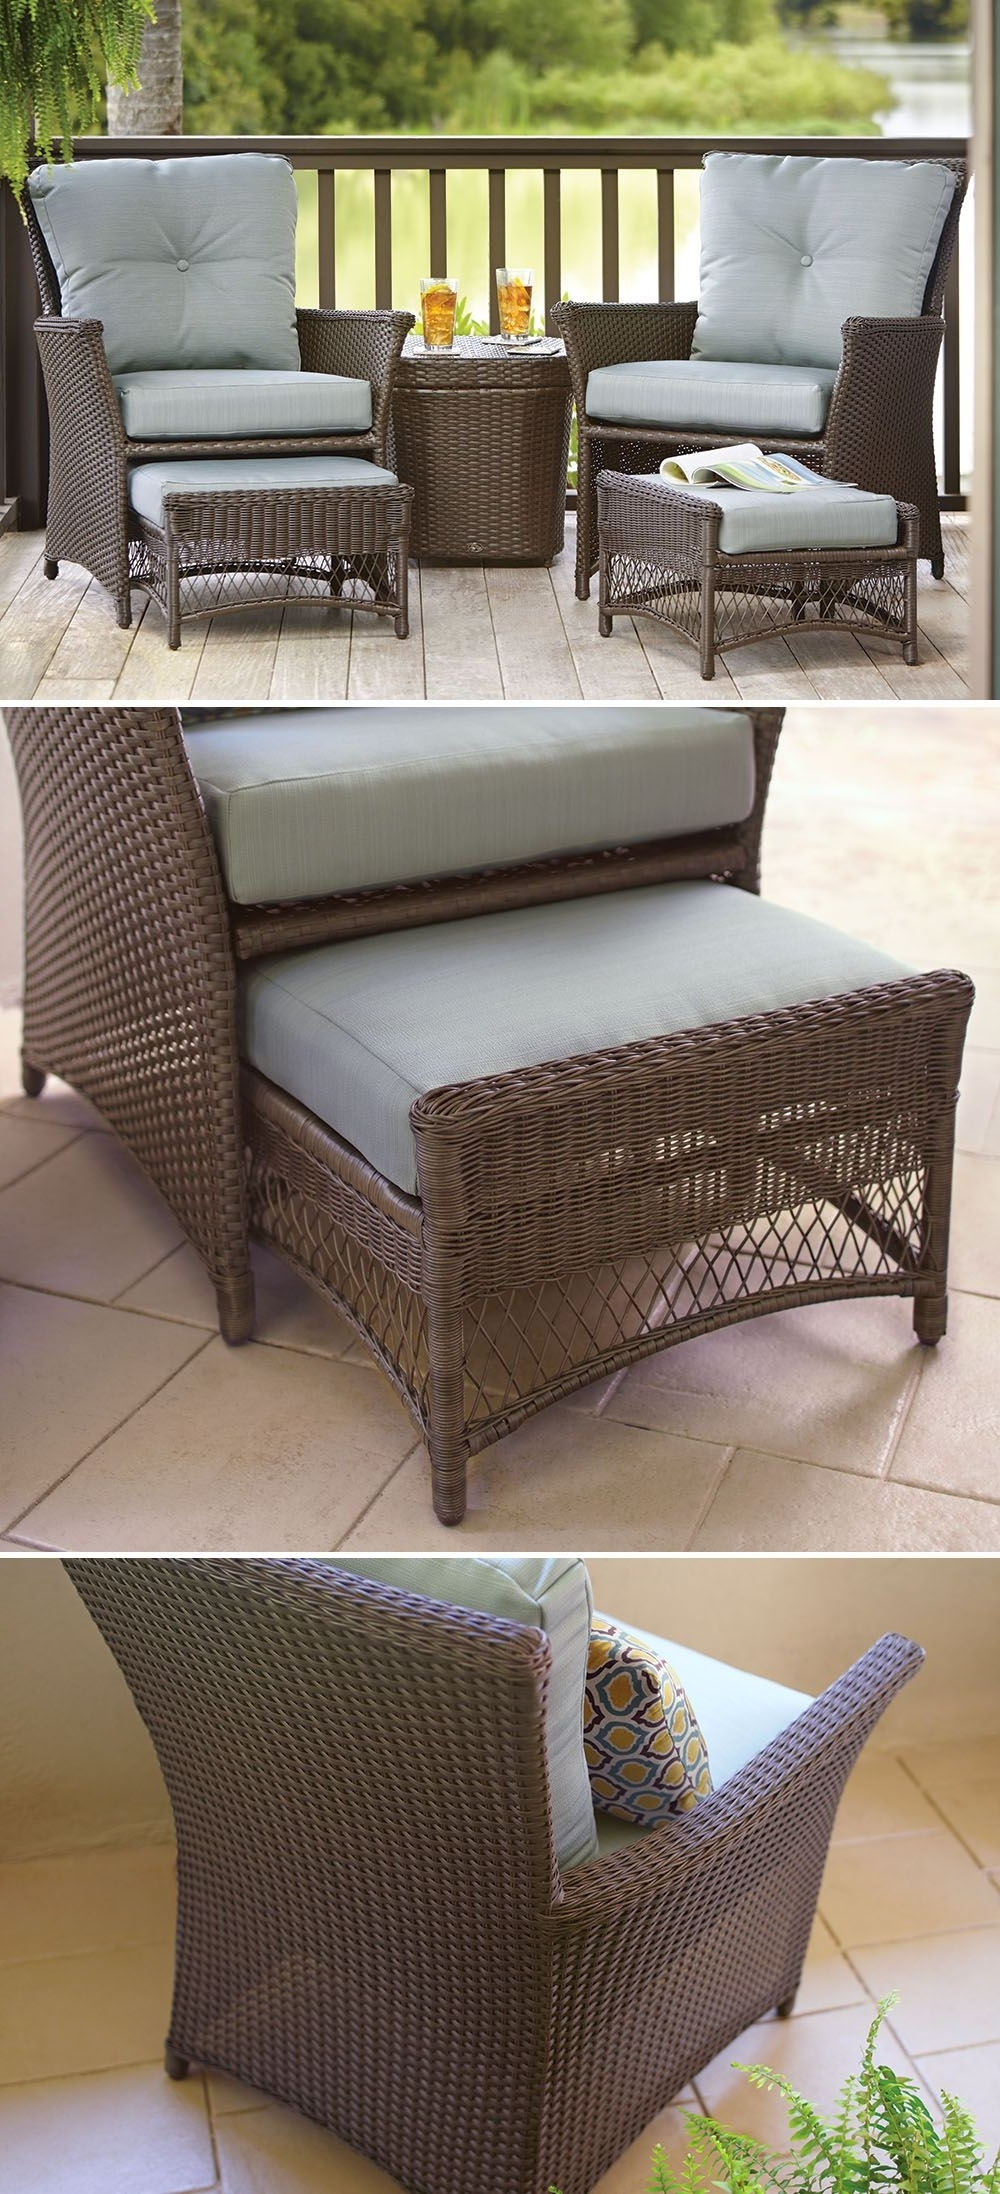 Patio Conversation Sets With Storage Throughout Famous This Affordable Patio Set Is Just The Right Size For Your Small (View 11 of 15)